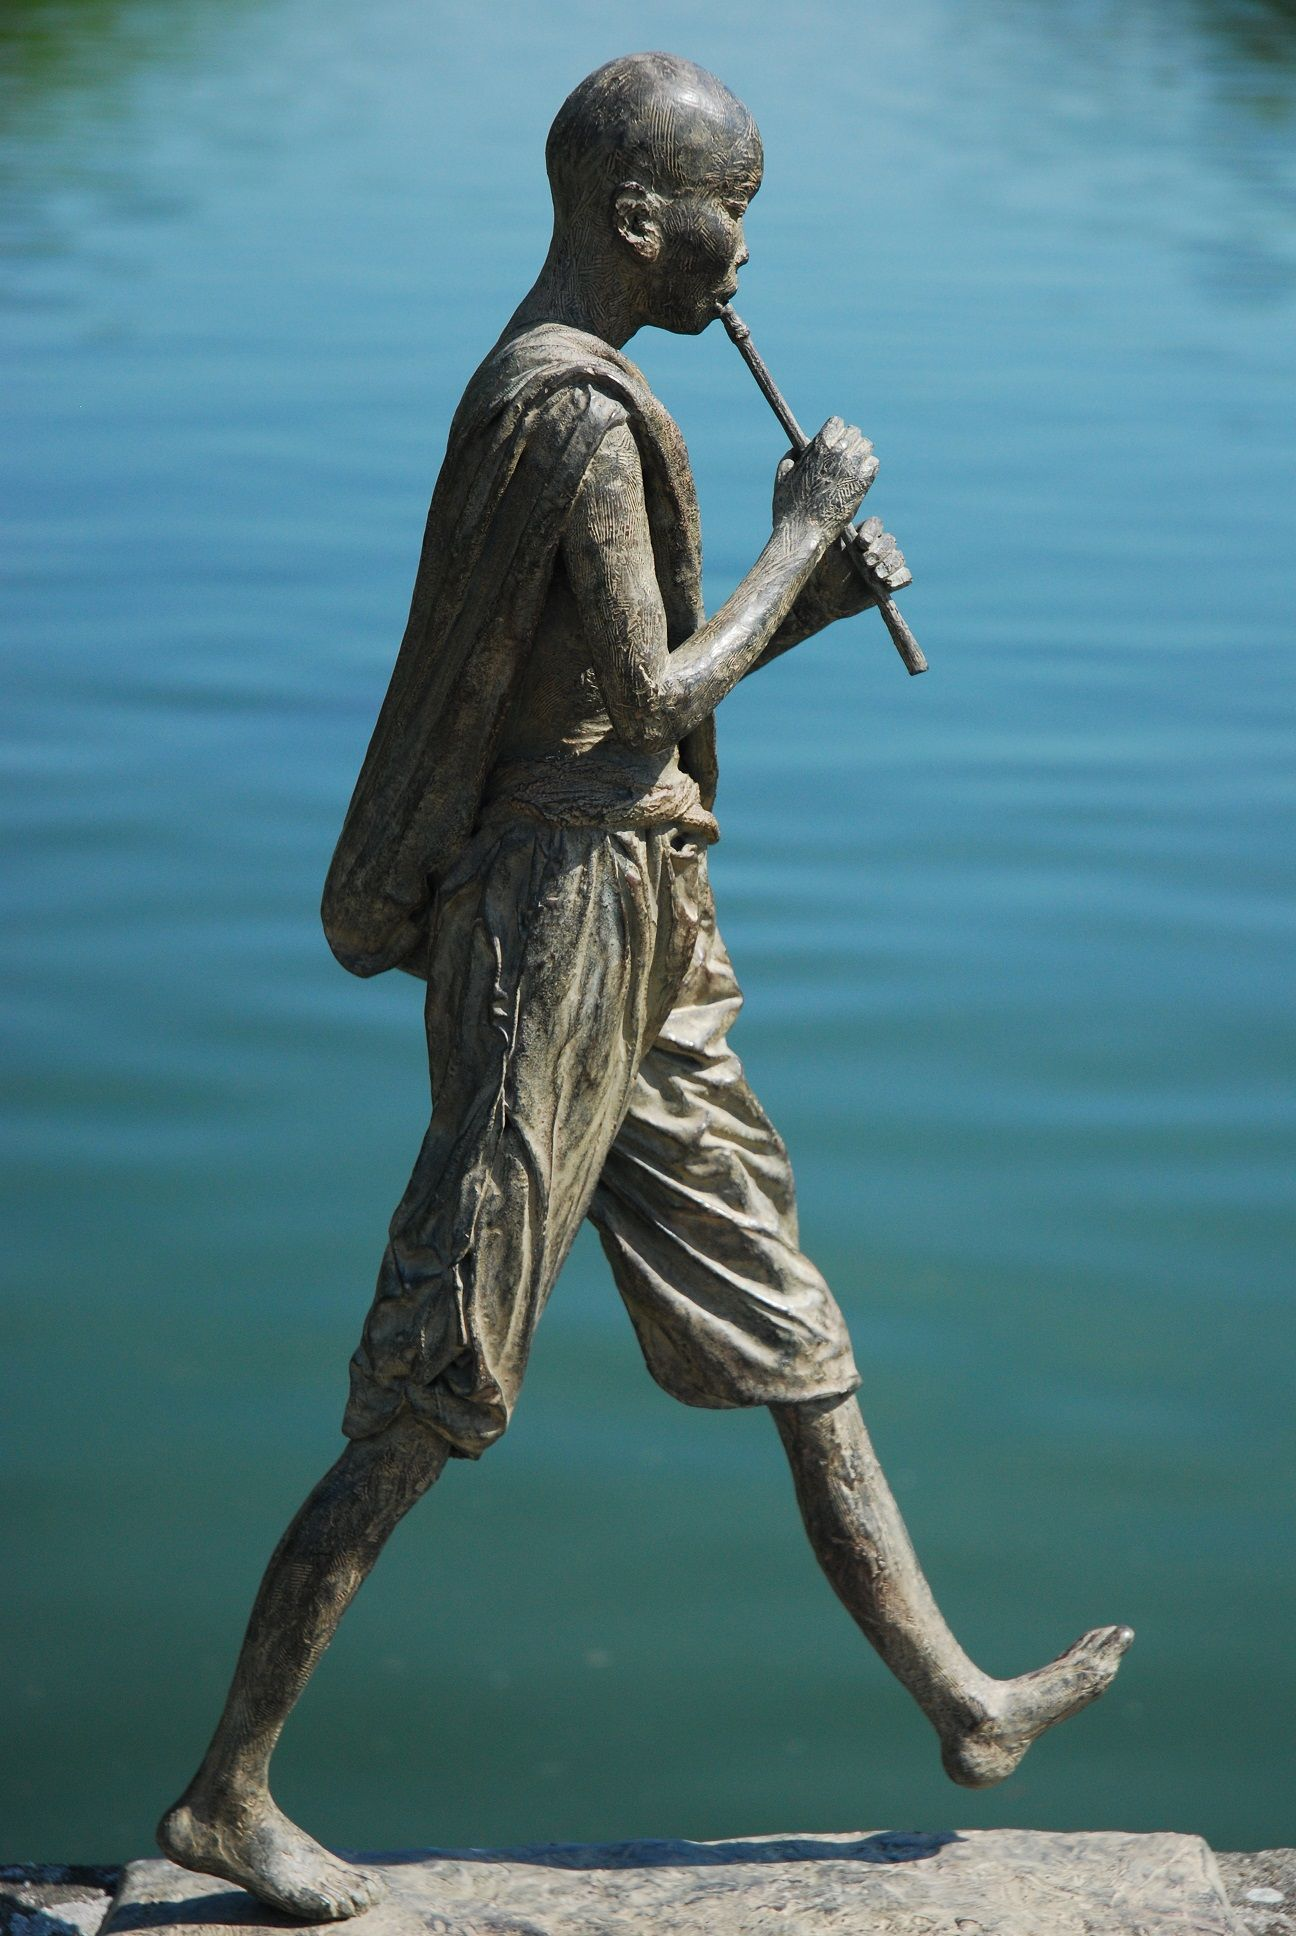 Big Flute Player,Marine de Soos,Sculpture, detail 2